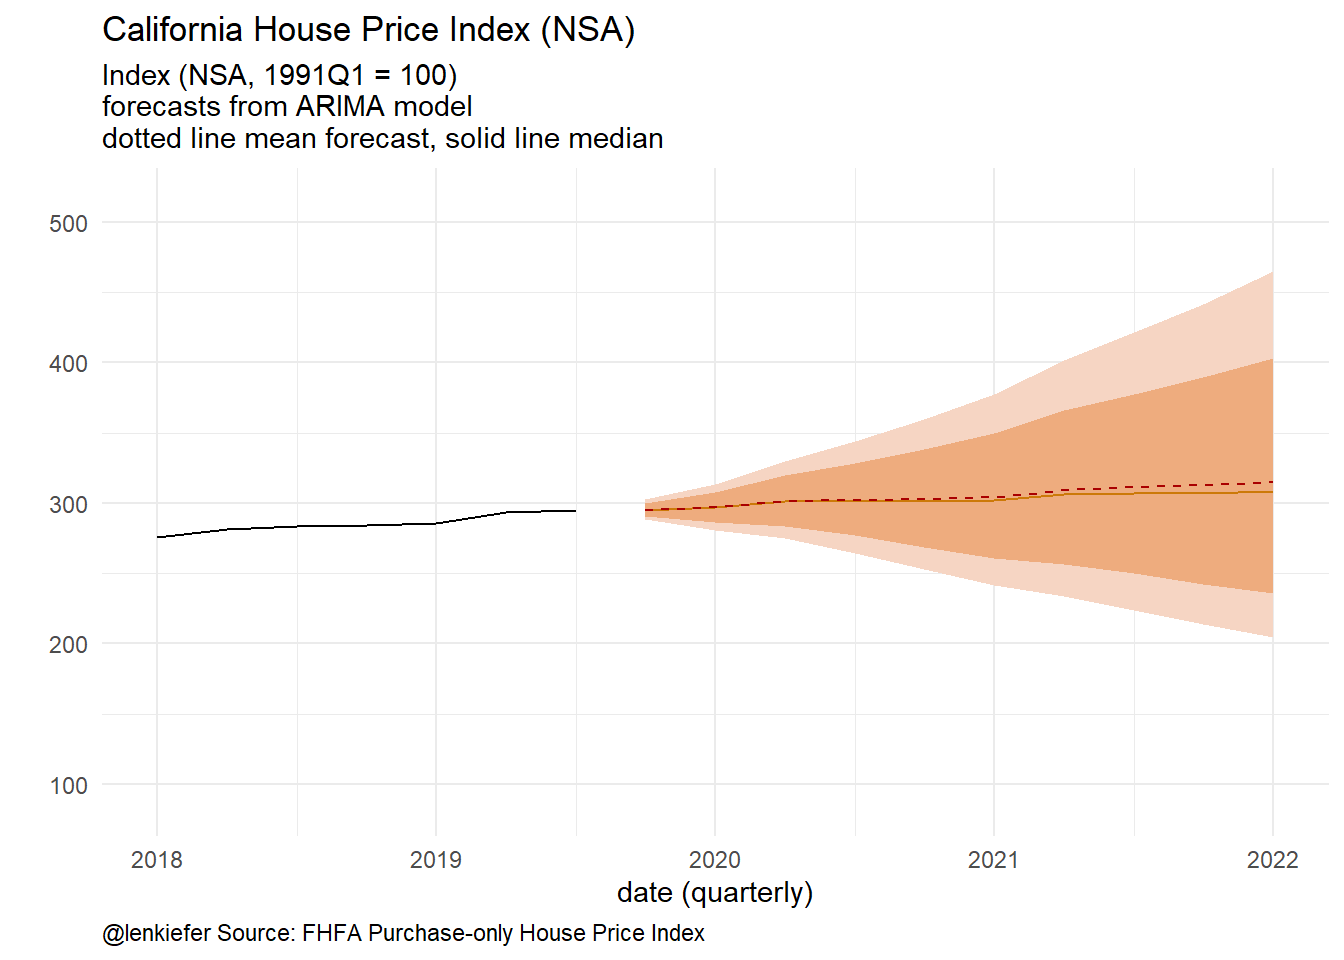 Mean and median forecasts